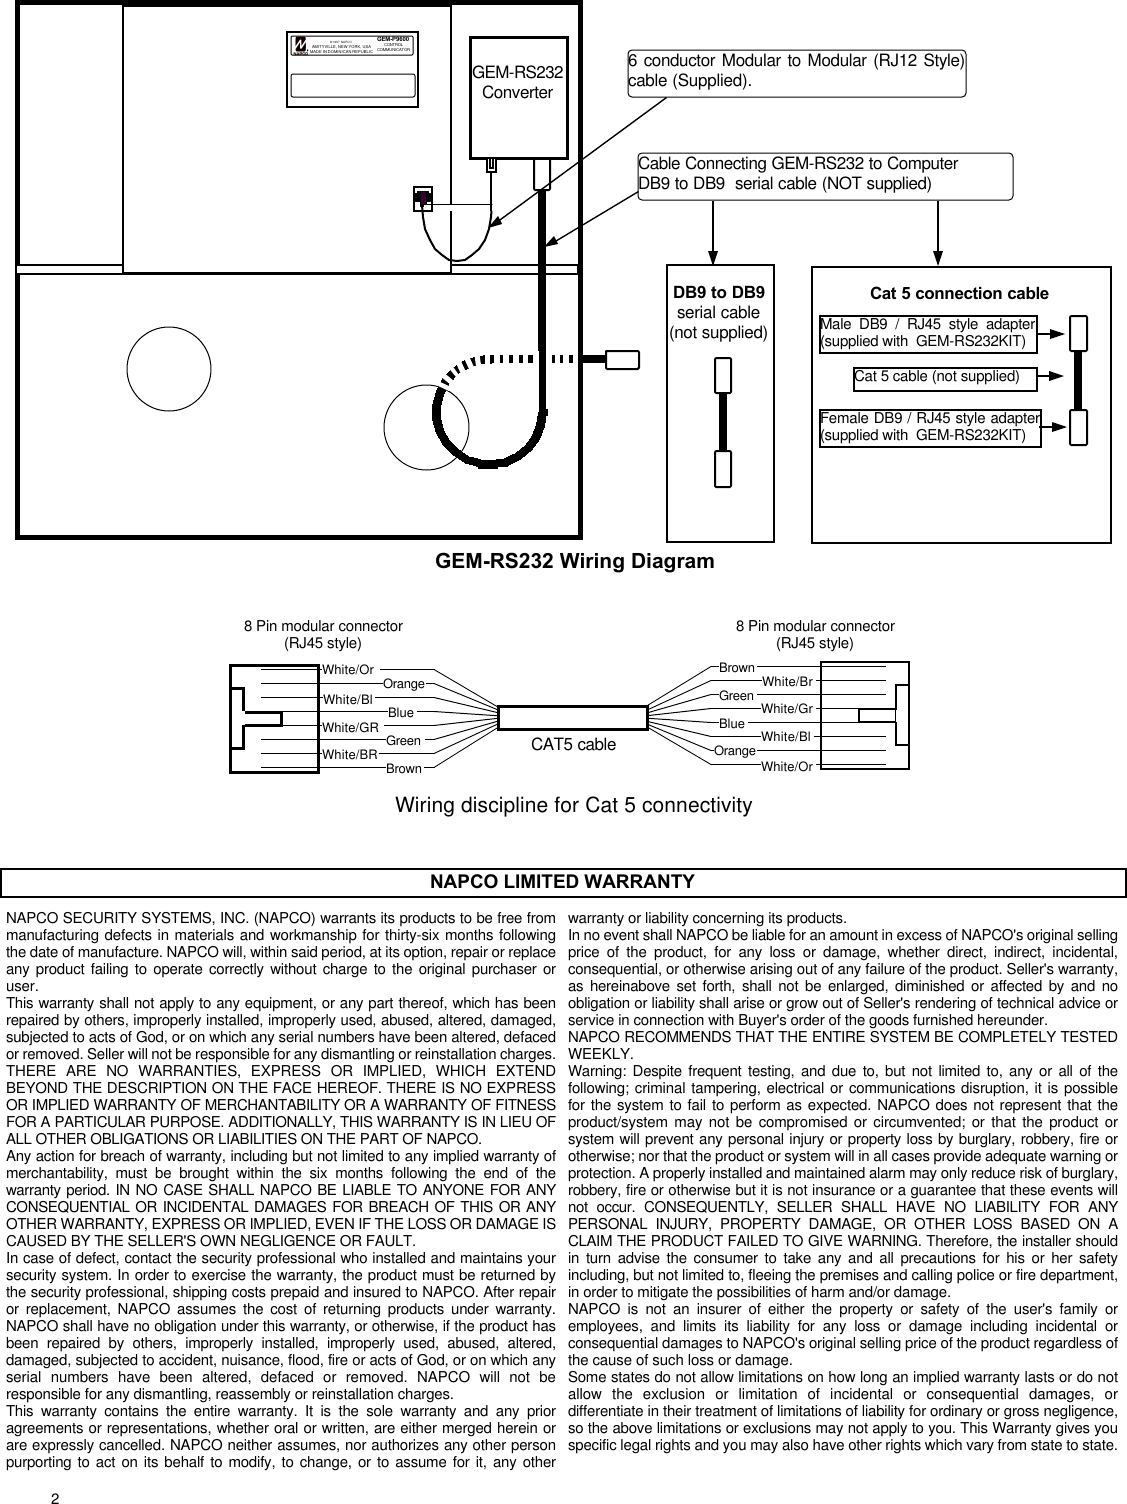 Rj45 To Db9 Wiring Diagram Page 3 And Schematics Moreover Pinout On 9 Pin Serial Connector Unique Festooning Electrical